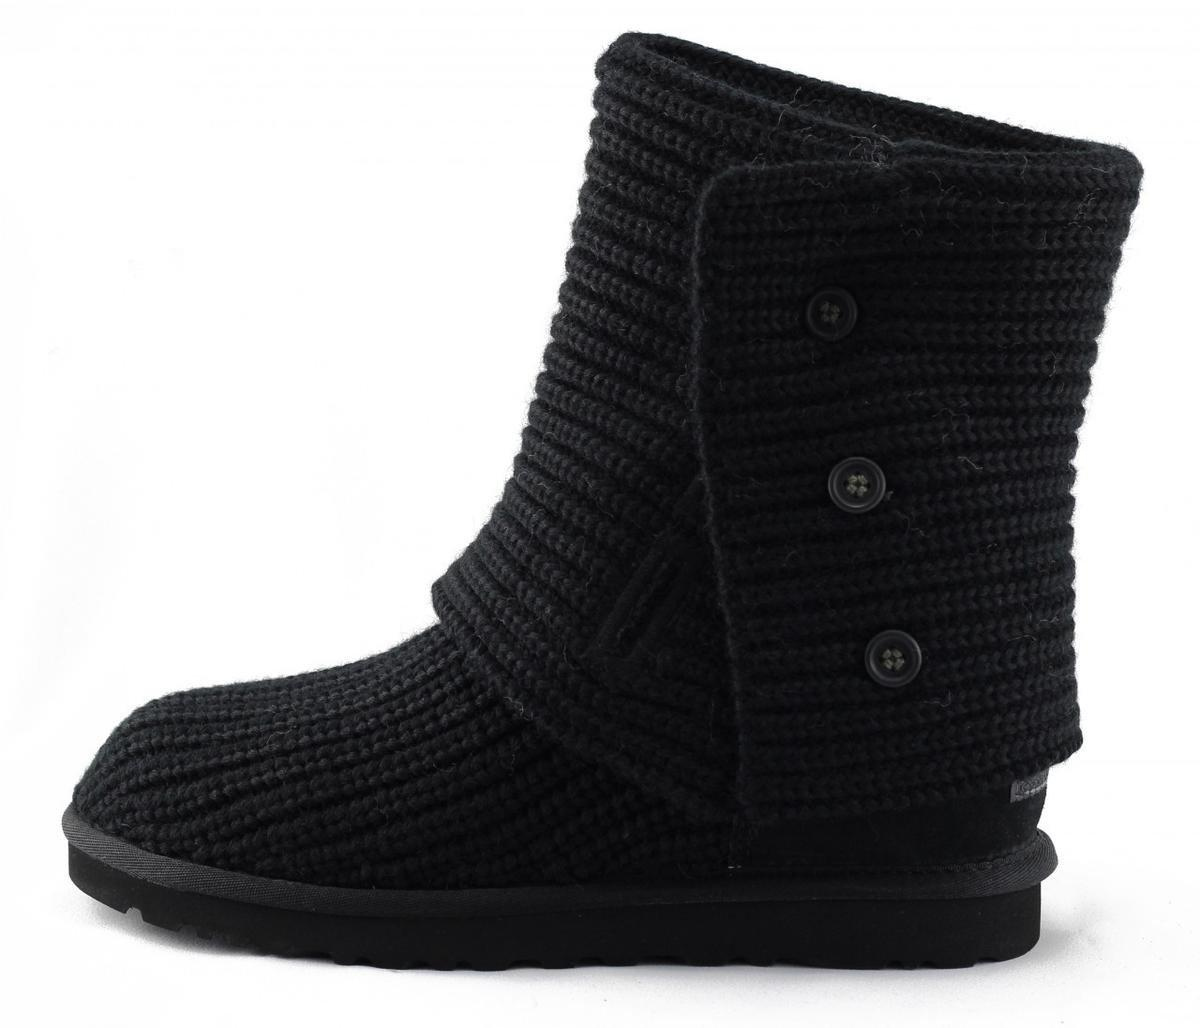 114104dce82 Women's Cardy Black Boots